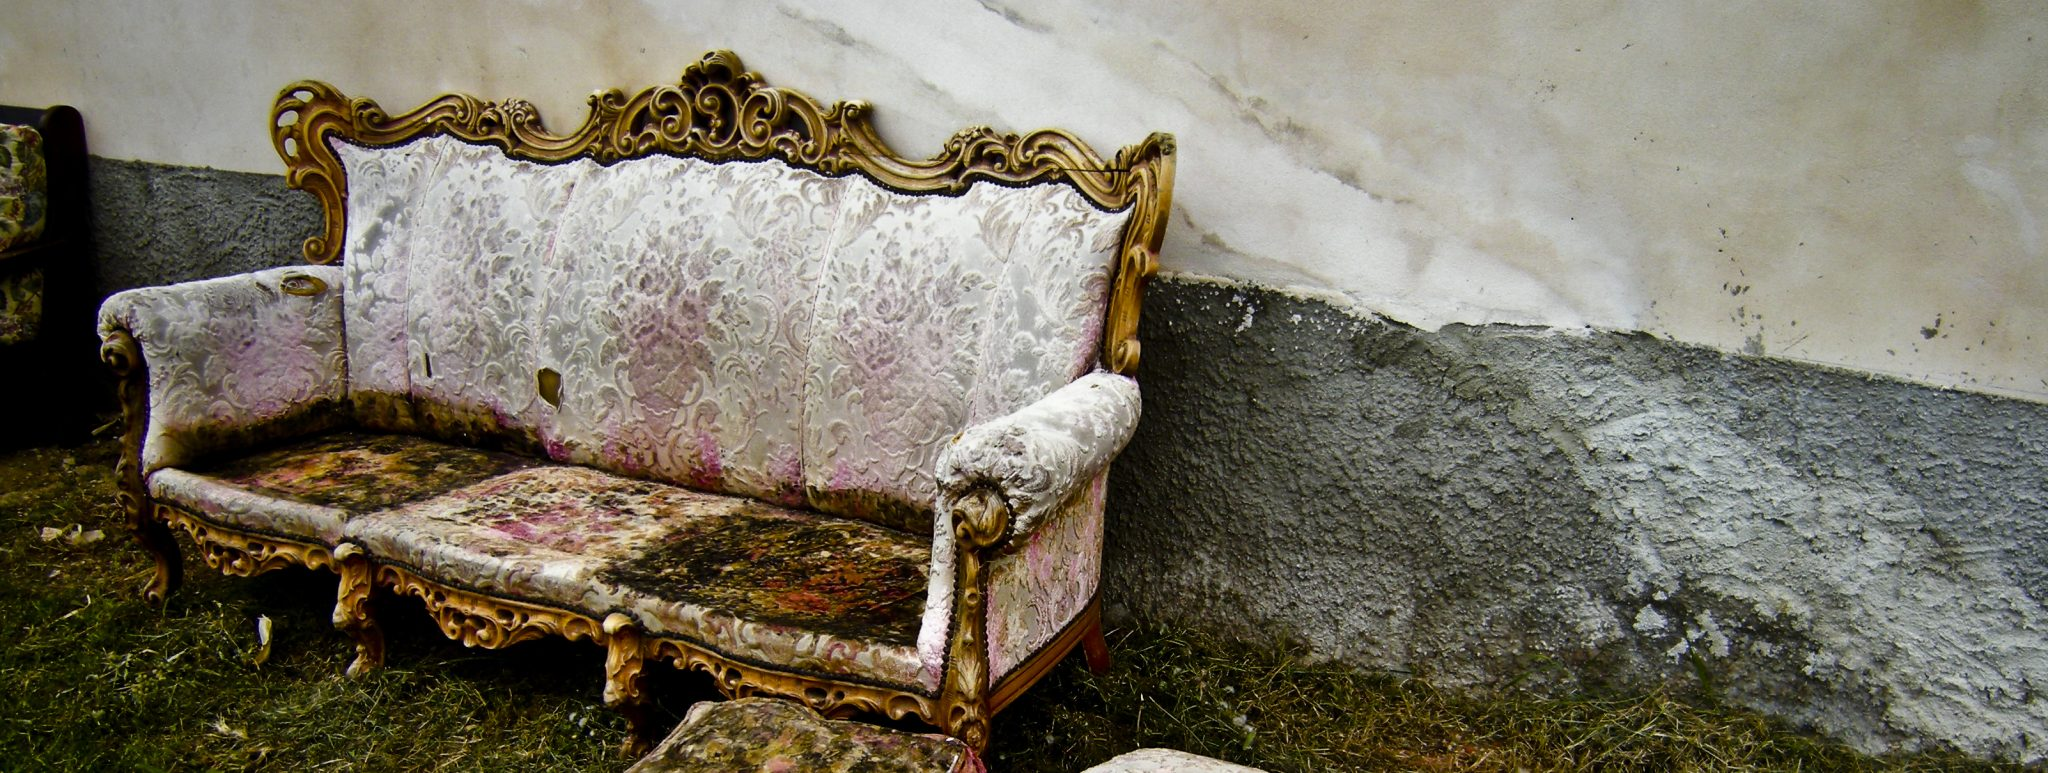 Get Rid Of Old Sofa Best Ways To Furniture